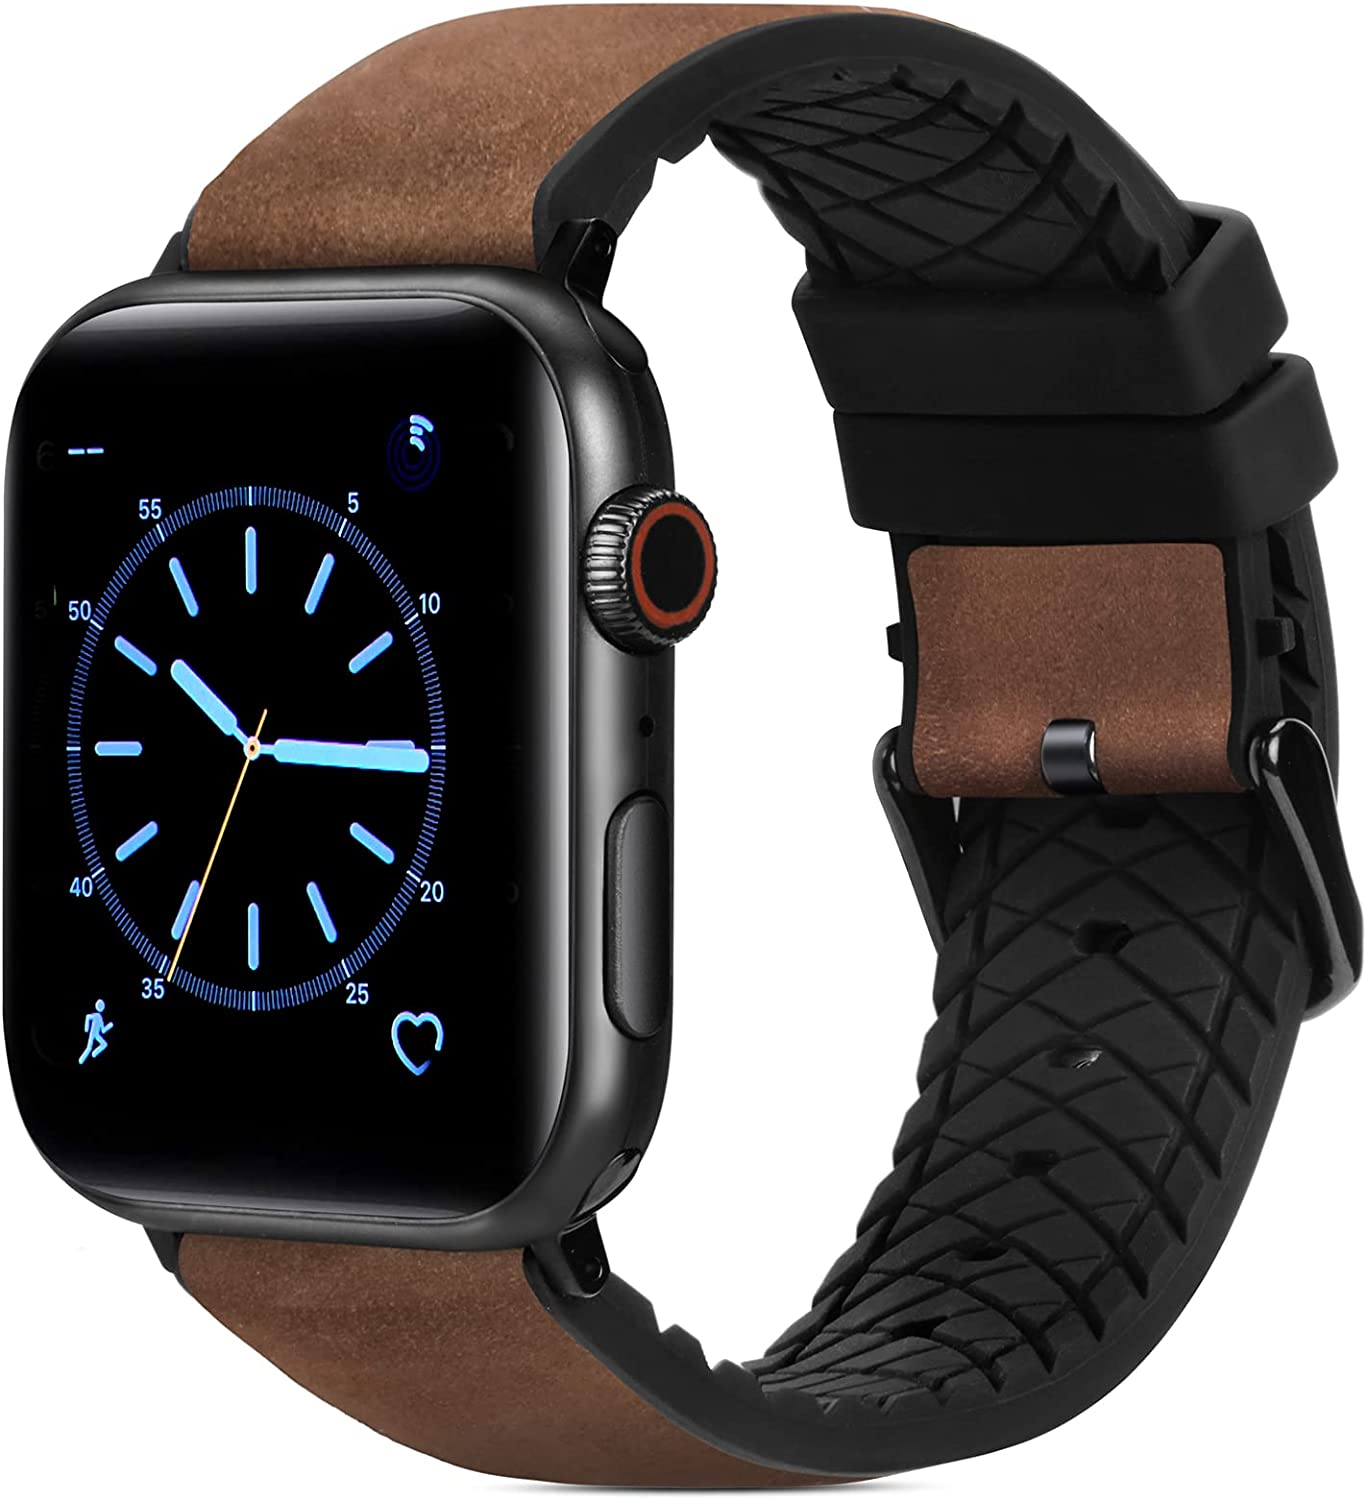 FITWORTH High End Hybrid Band Compatible with Apple Watch Band 42mm 44mm, Silicone + Genuine Leather, Simple, Neat & Sweat Resistant, Suit for Men's Business Casual & Light Sports (Coffee, 42/44)